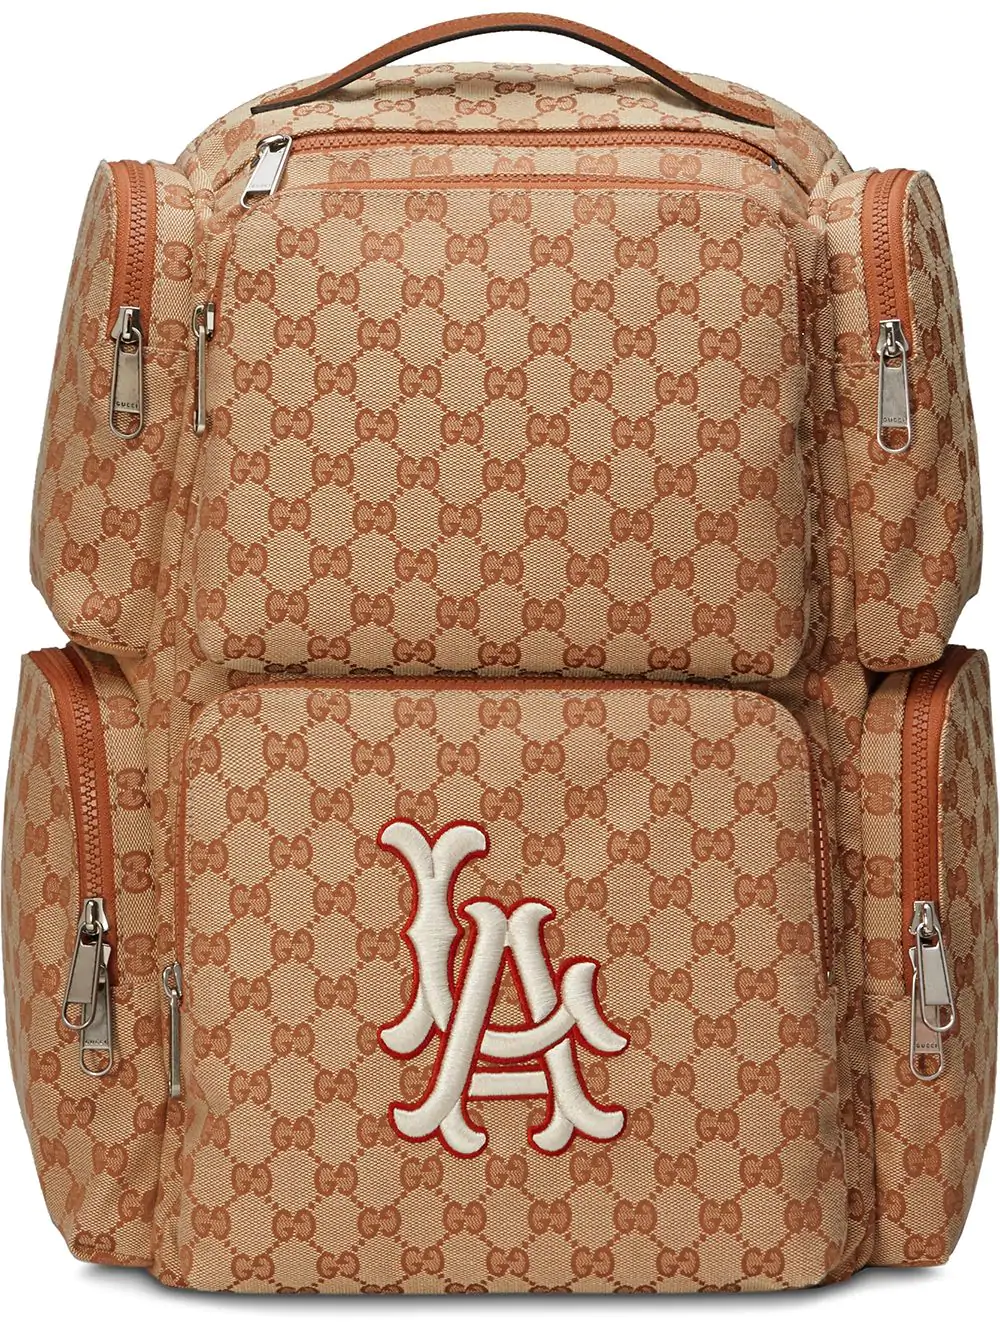 6eee190e7d52c Gucci Men s Large Original Gg Backpack With La Angels Mlb Applique In 9585  Nude